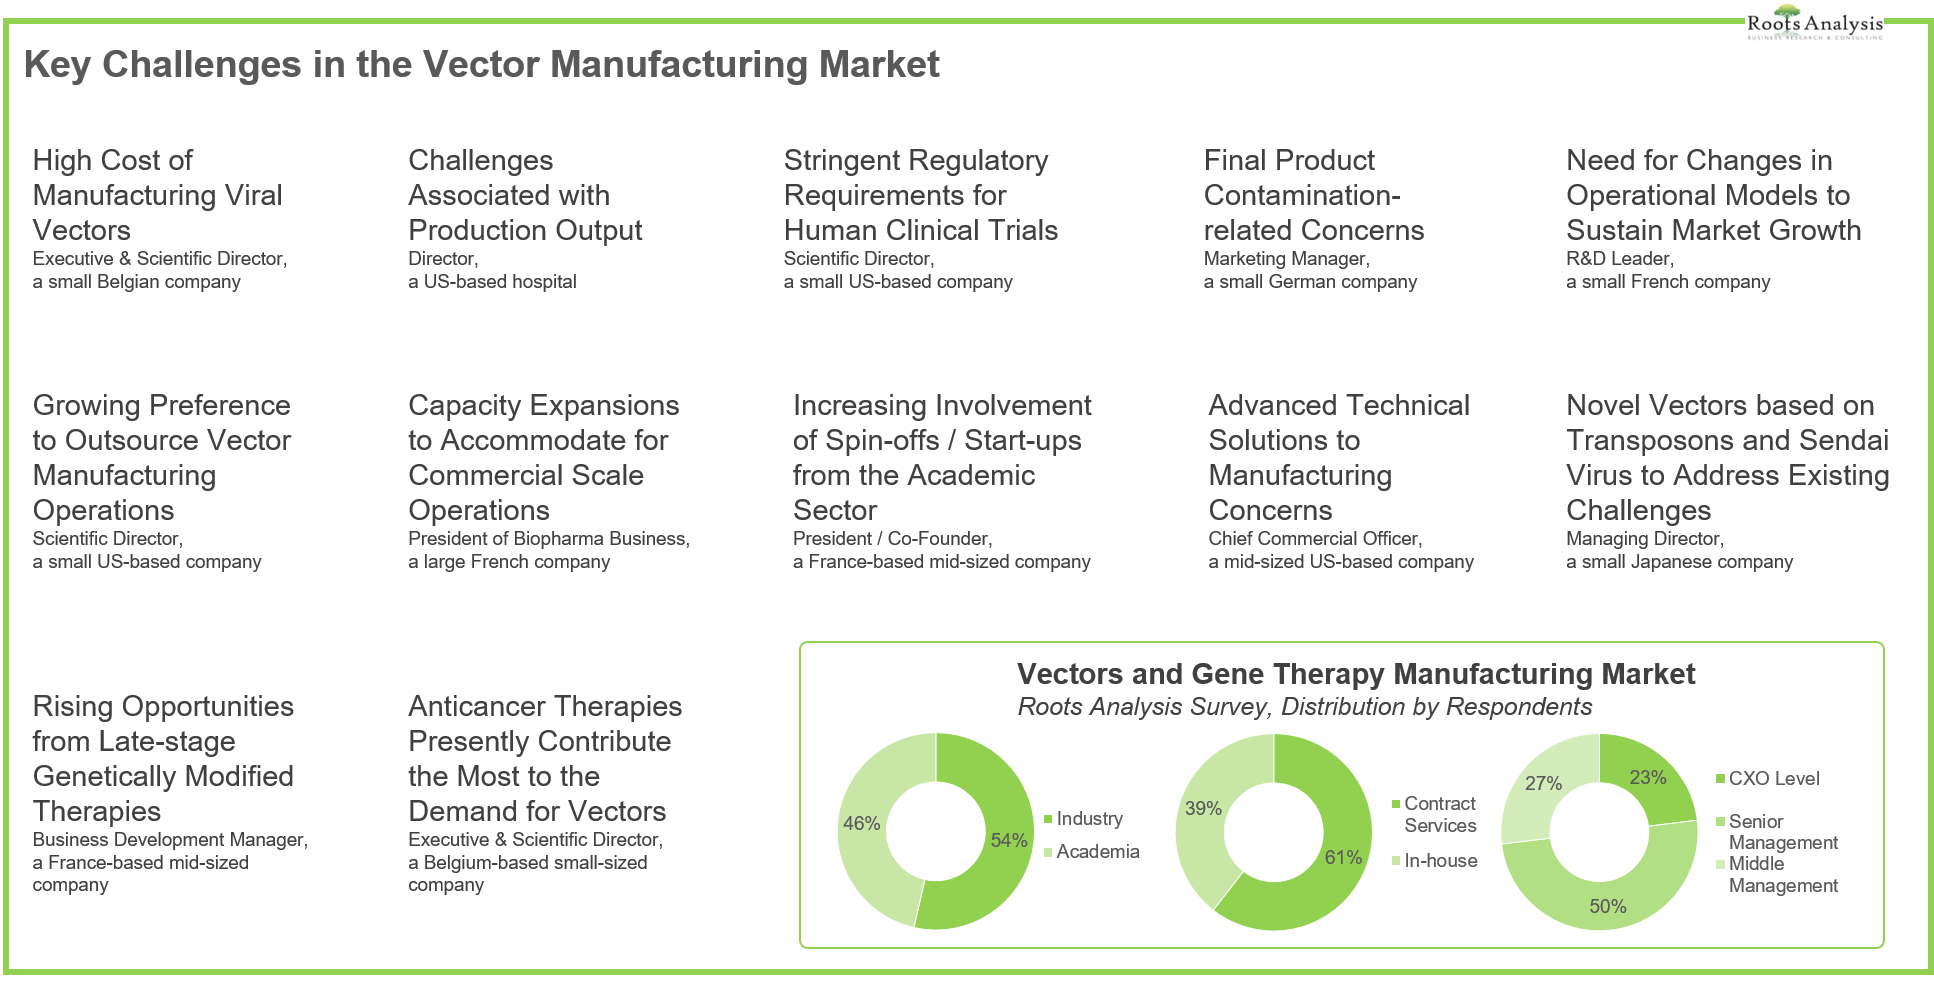 Vector manufacturing market interview highlights market unmet needs